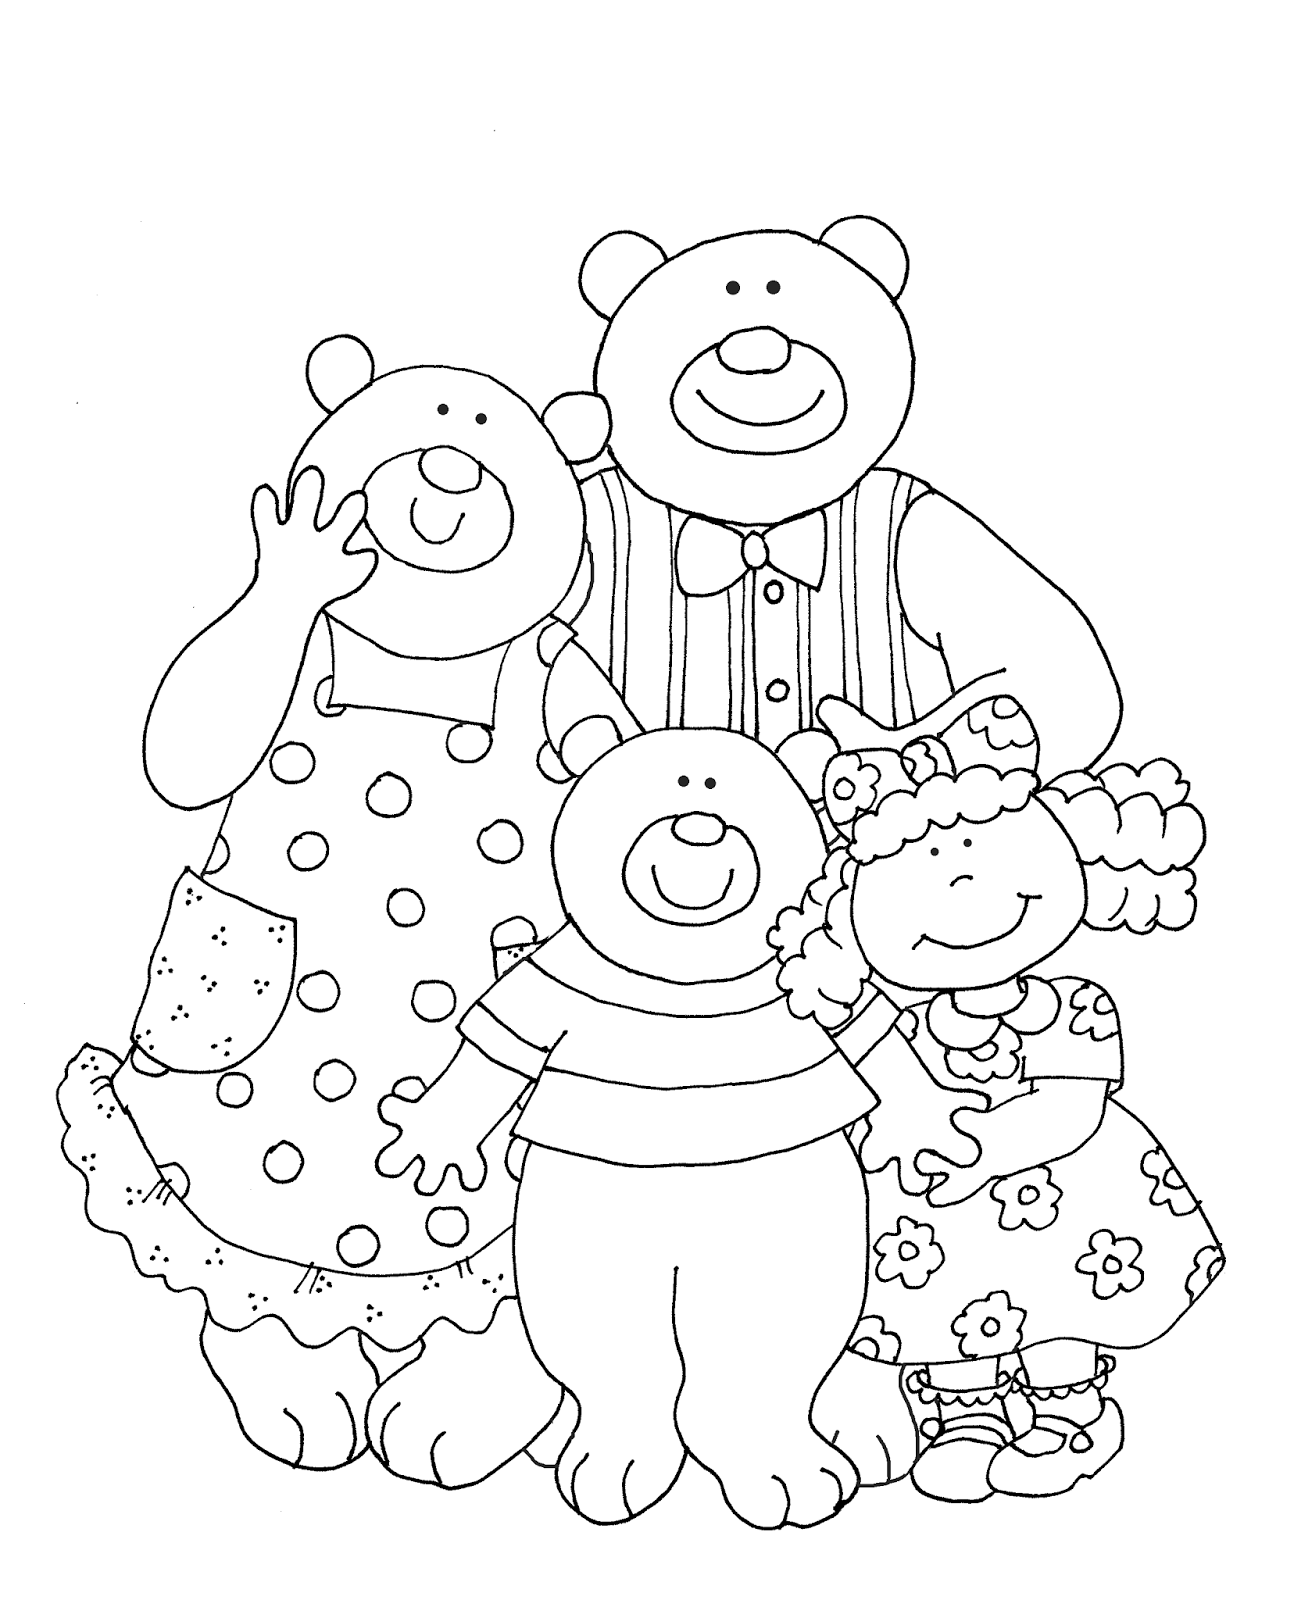 Colouring pages goldilocks and three bears - Goldilocks And The Three Bears